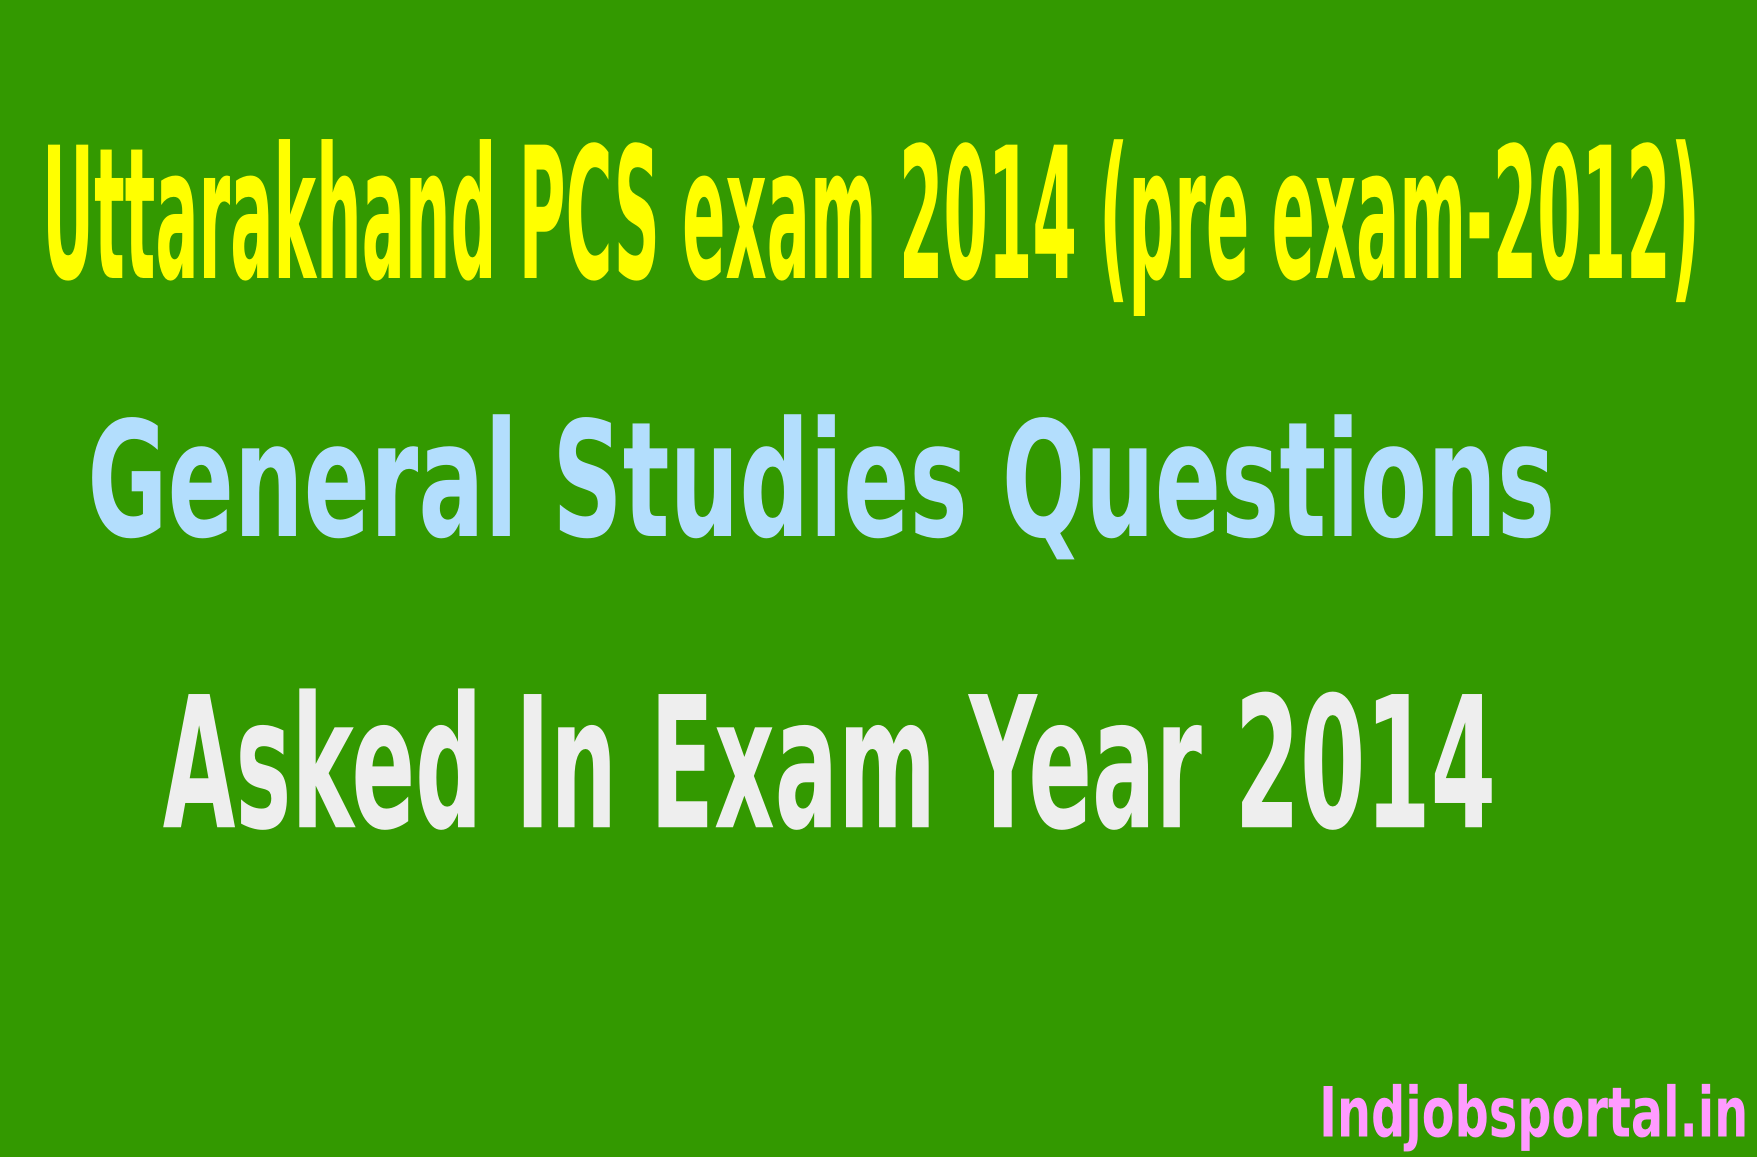 General Studies Questions Asked In Uttarakhand PCS Exam 2014 (Pre Exam-2012)